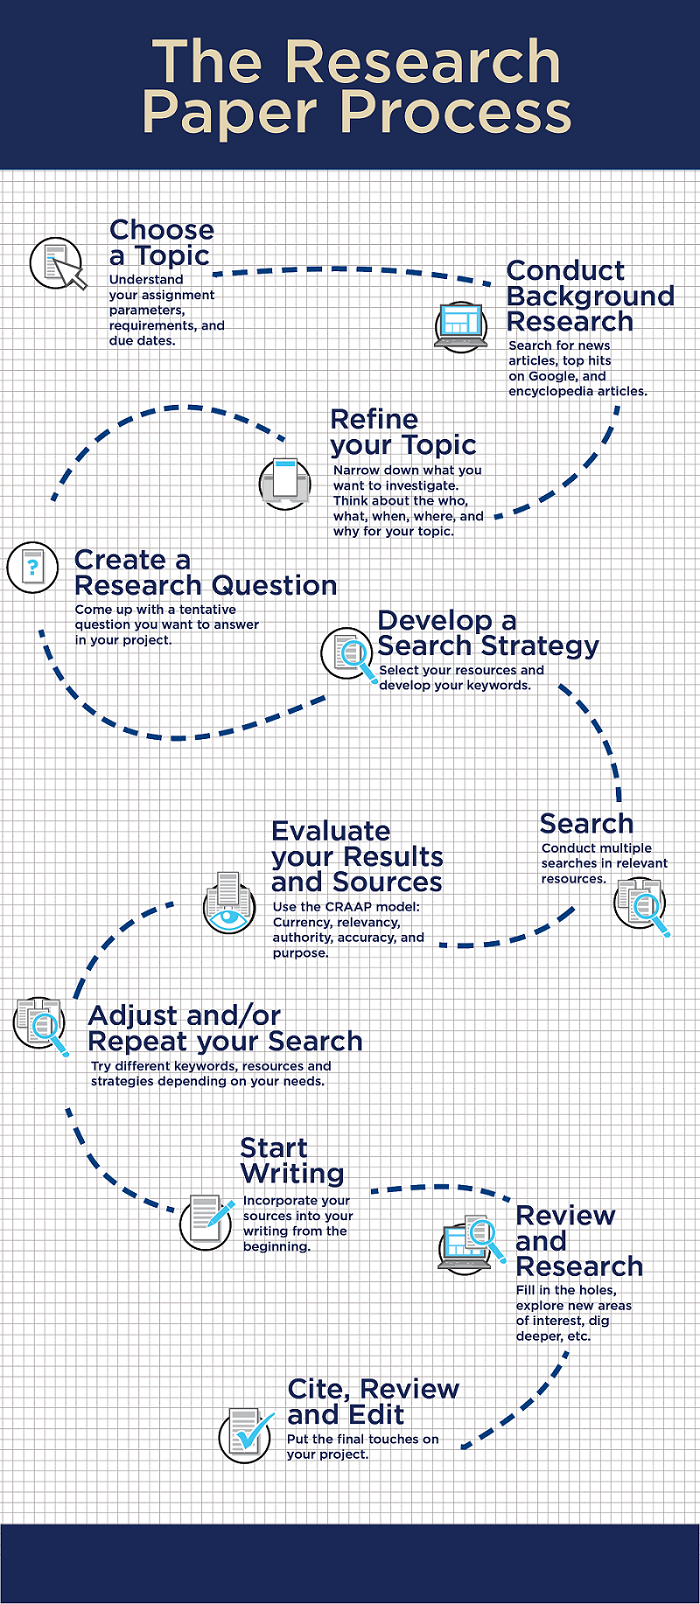 Illustrated research paper process, see accompanying text